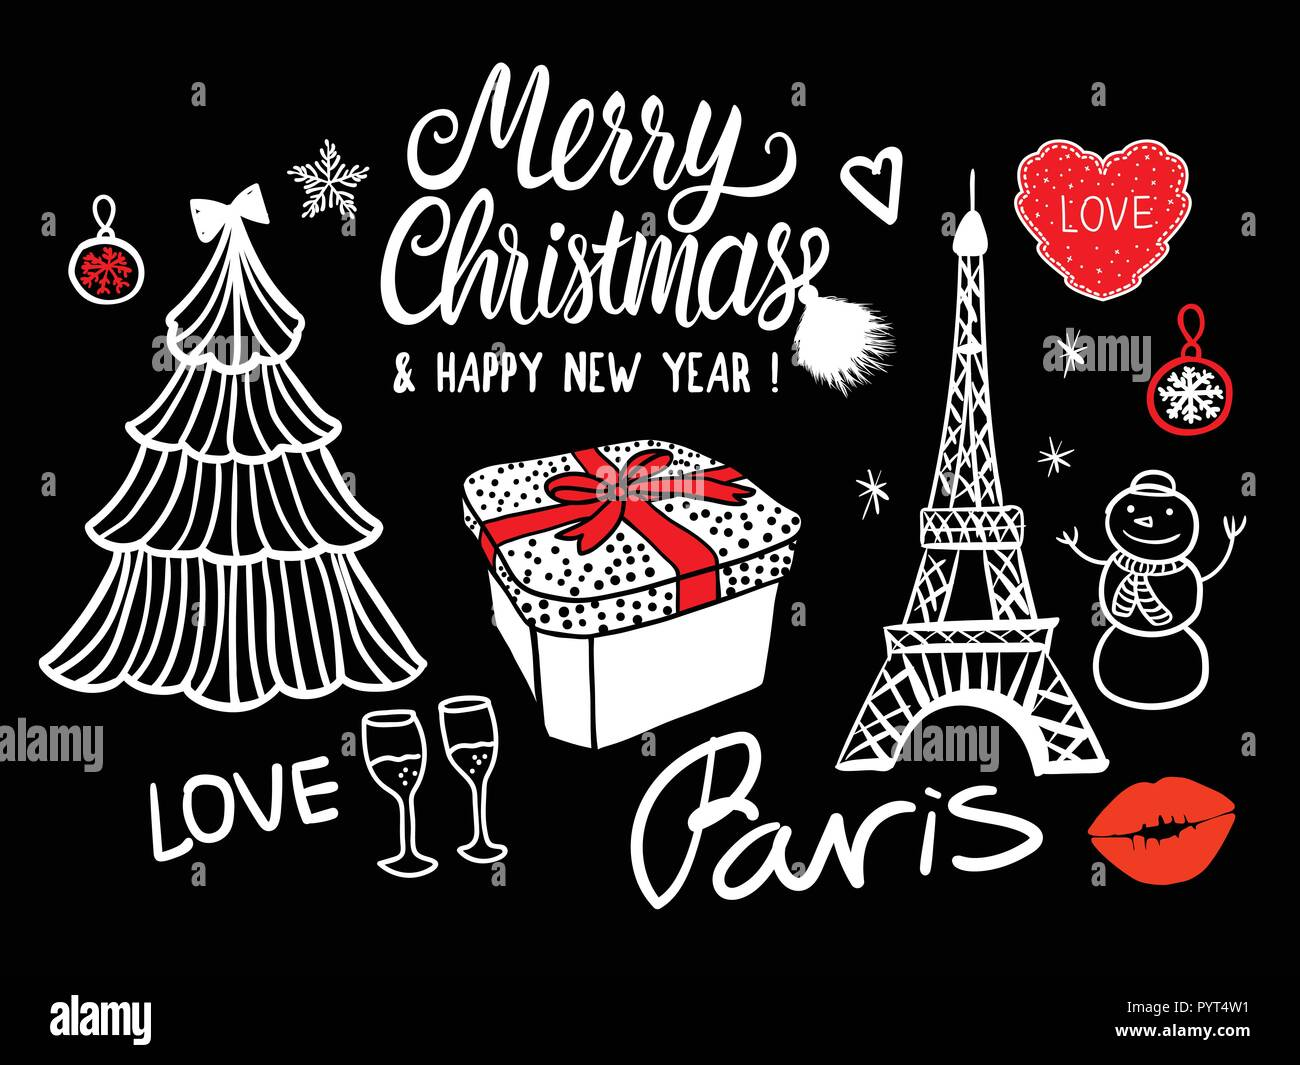 merry christmas and happy new year card fashion sketch celebration gift box tree and fireworks hand drawn vector illustration isolated on black background